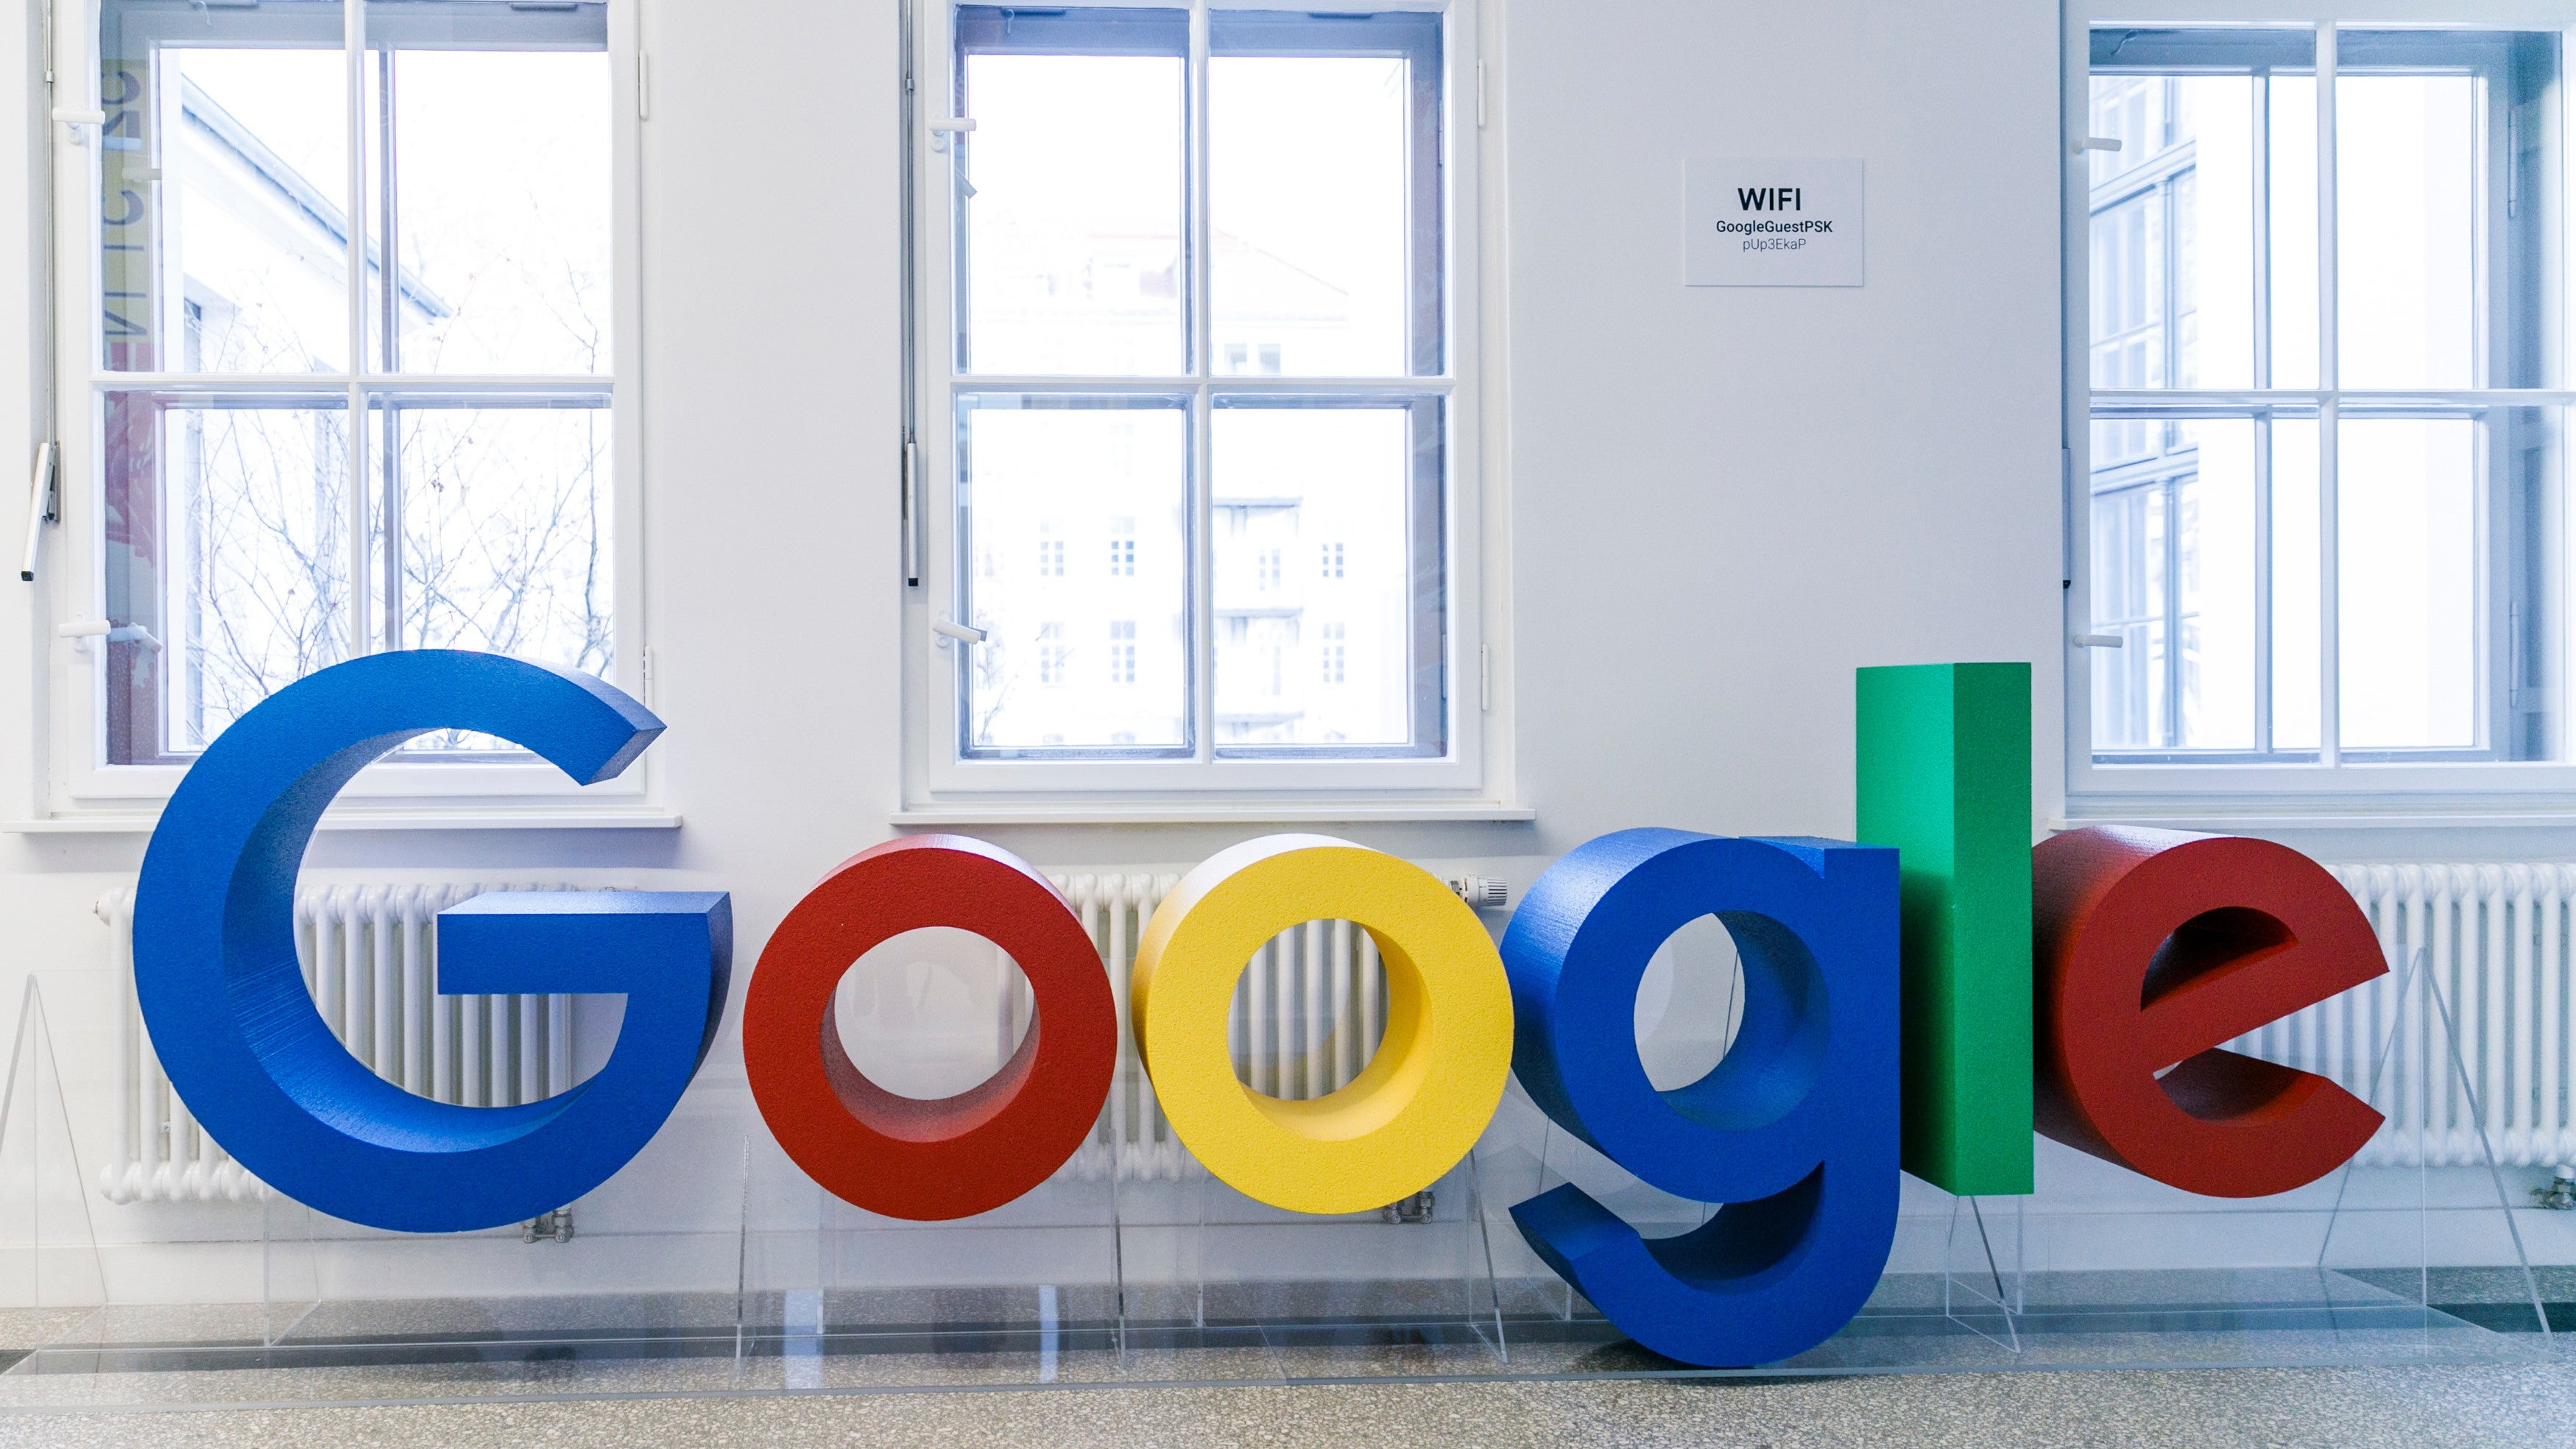 Google Is Funding Climate Change Denialism